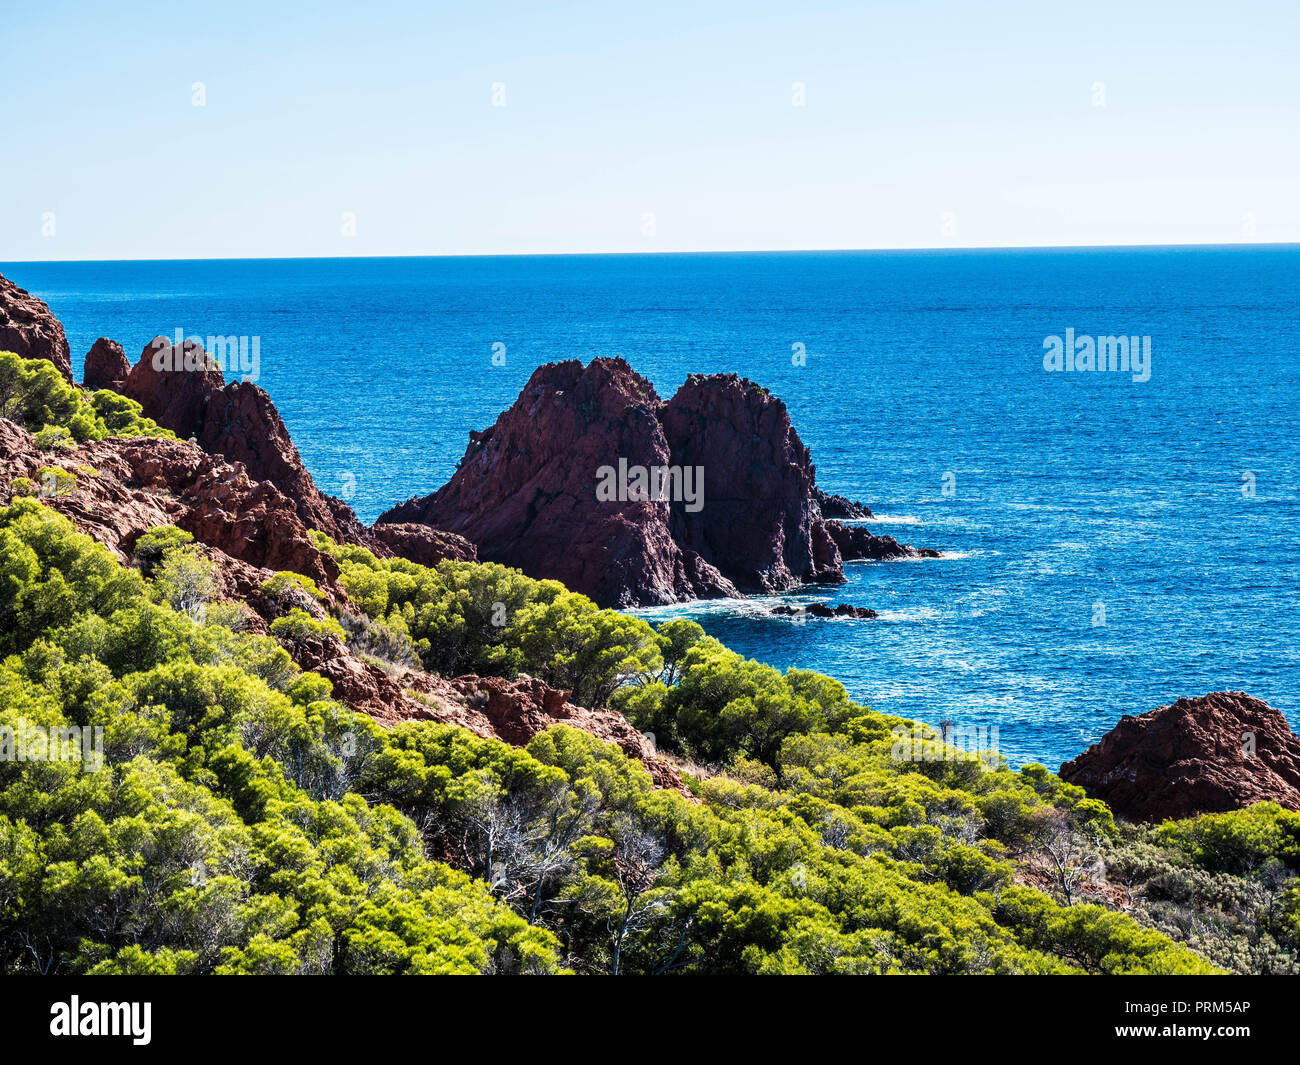 View over a national park direktly next to the mediterranean sea in france.Shot near Le Dramont, France (fr) - Stock Image